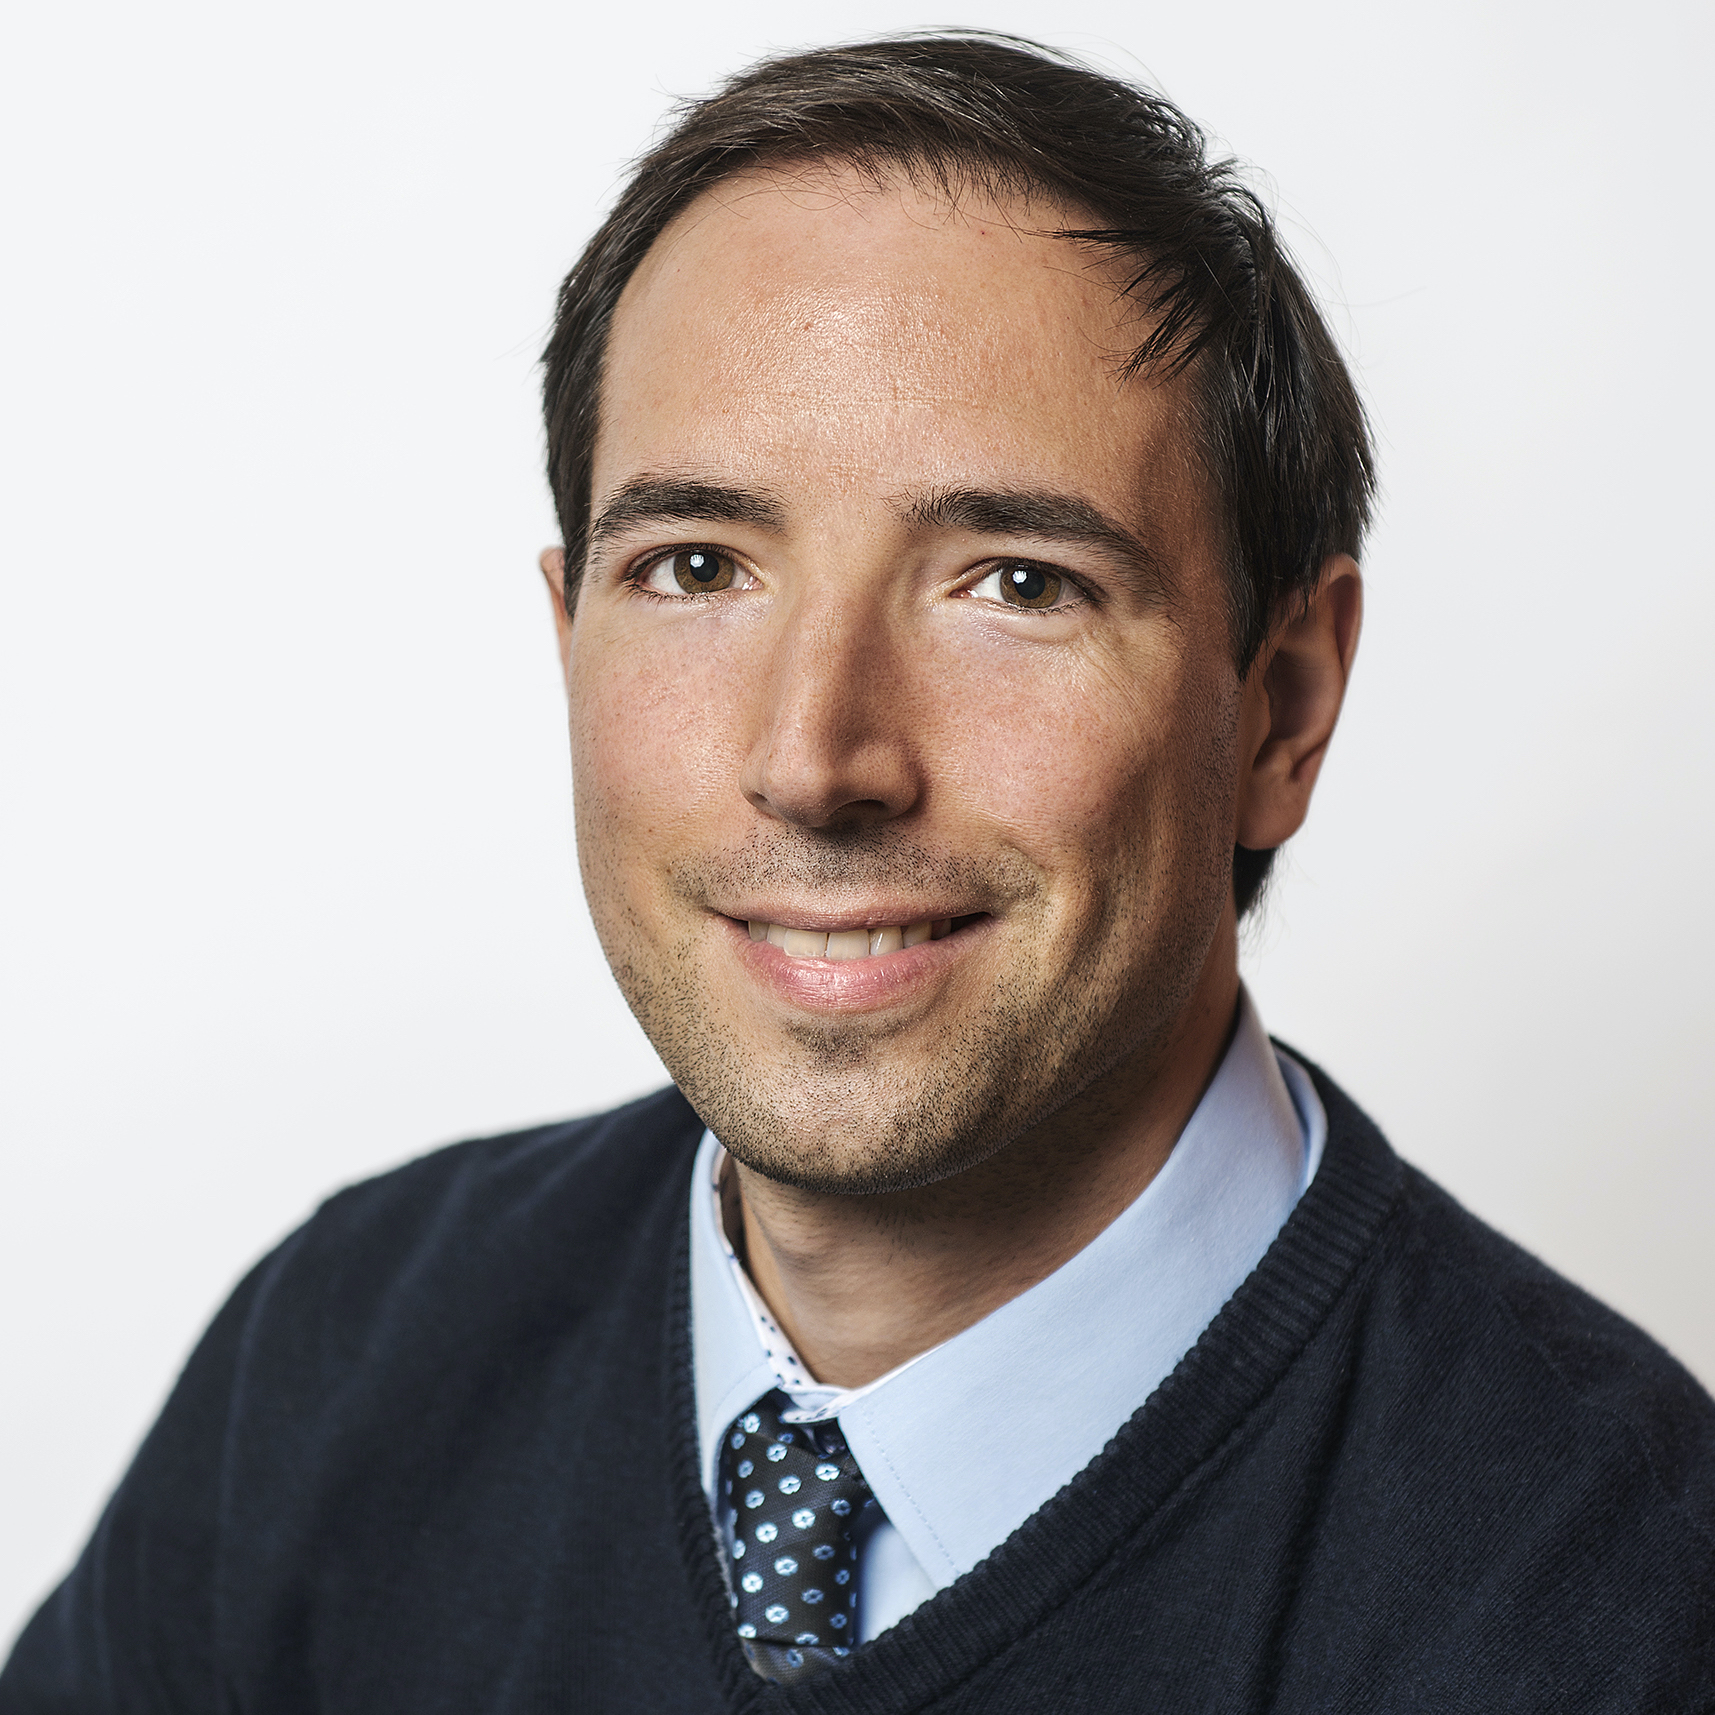 Photo of our Chief Scientific Officer, Julien Maruotti